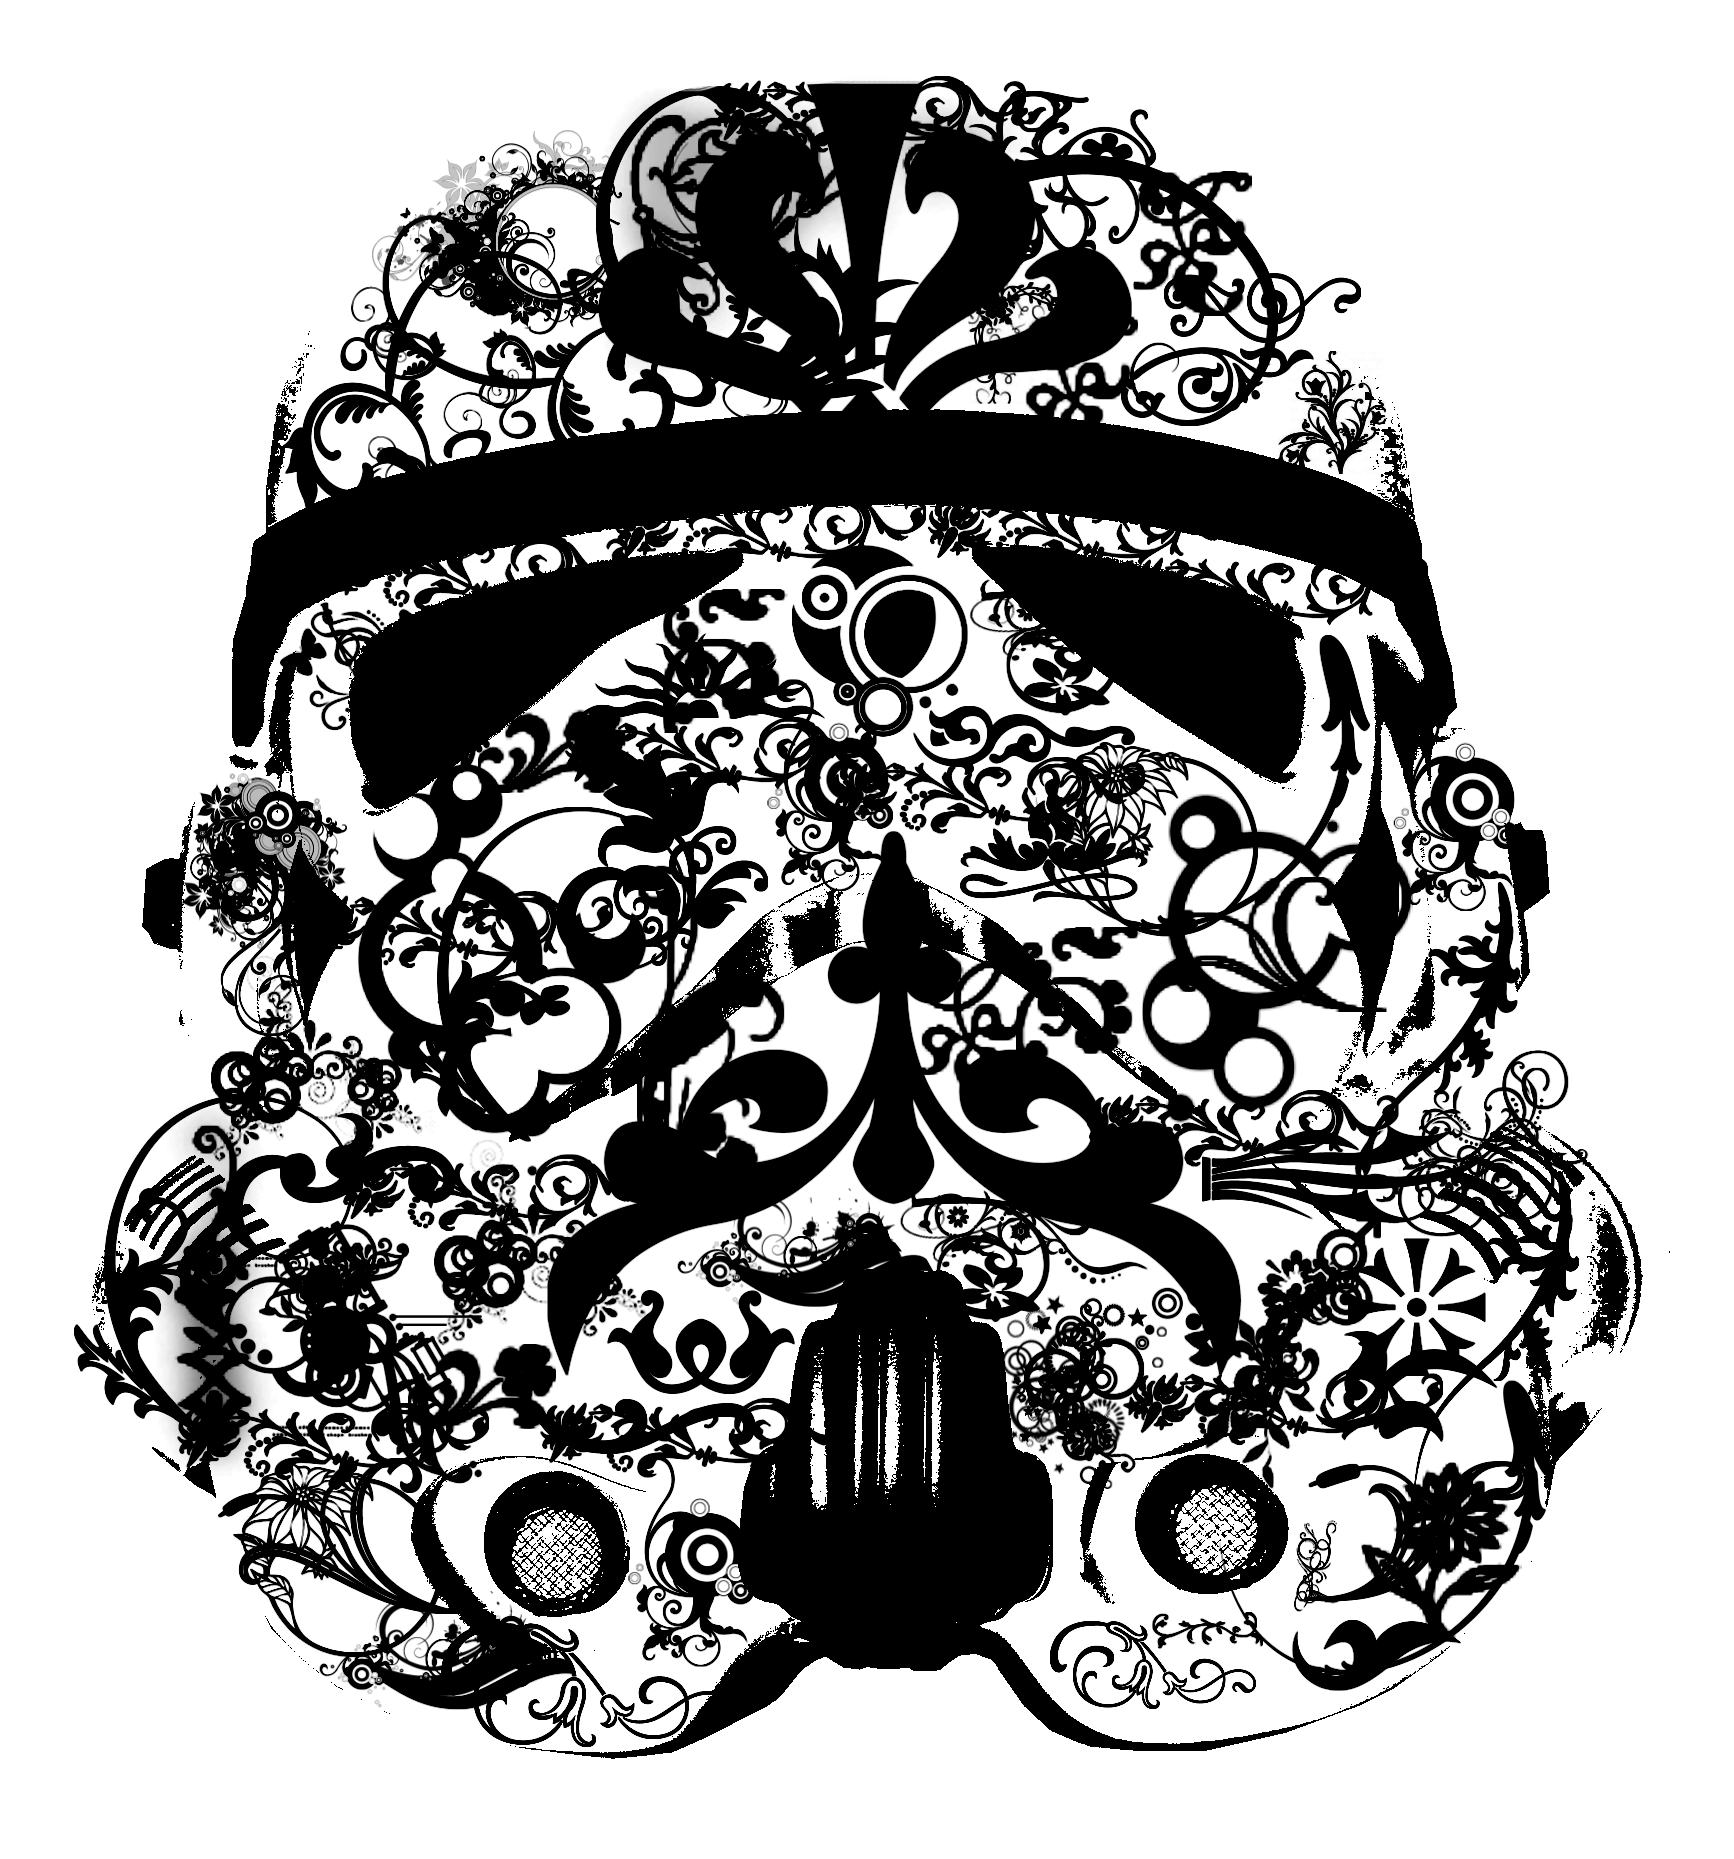 Stormtrooper Mask Drawing at GetDrawings com | Free for personal use